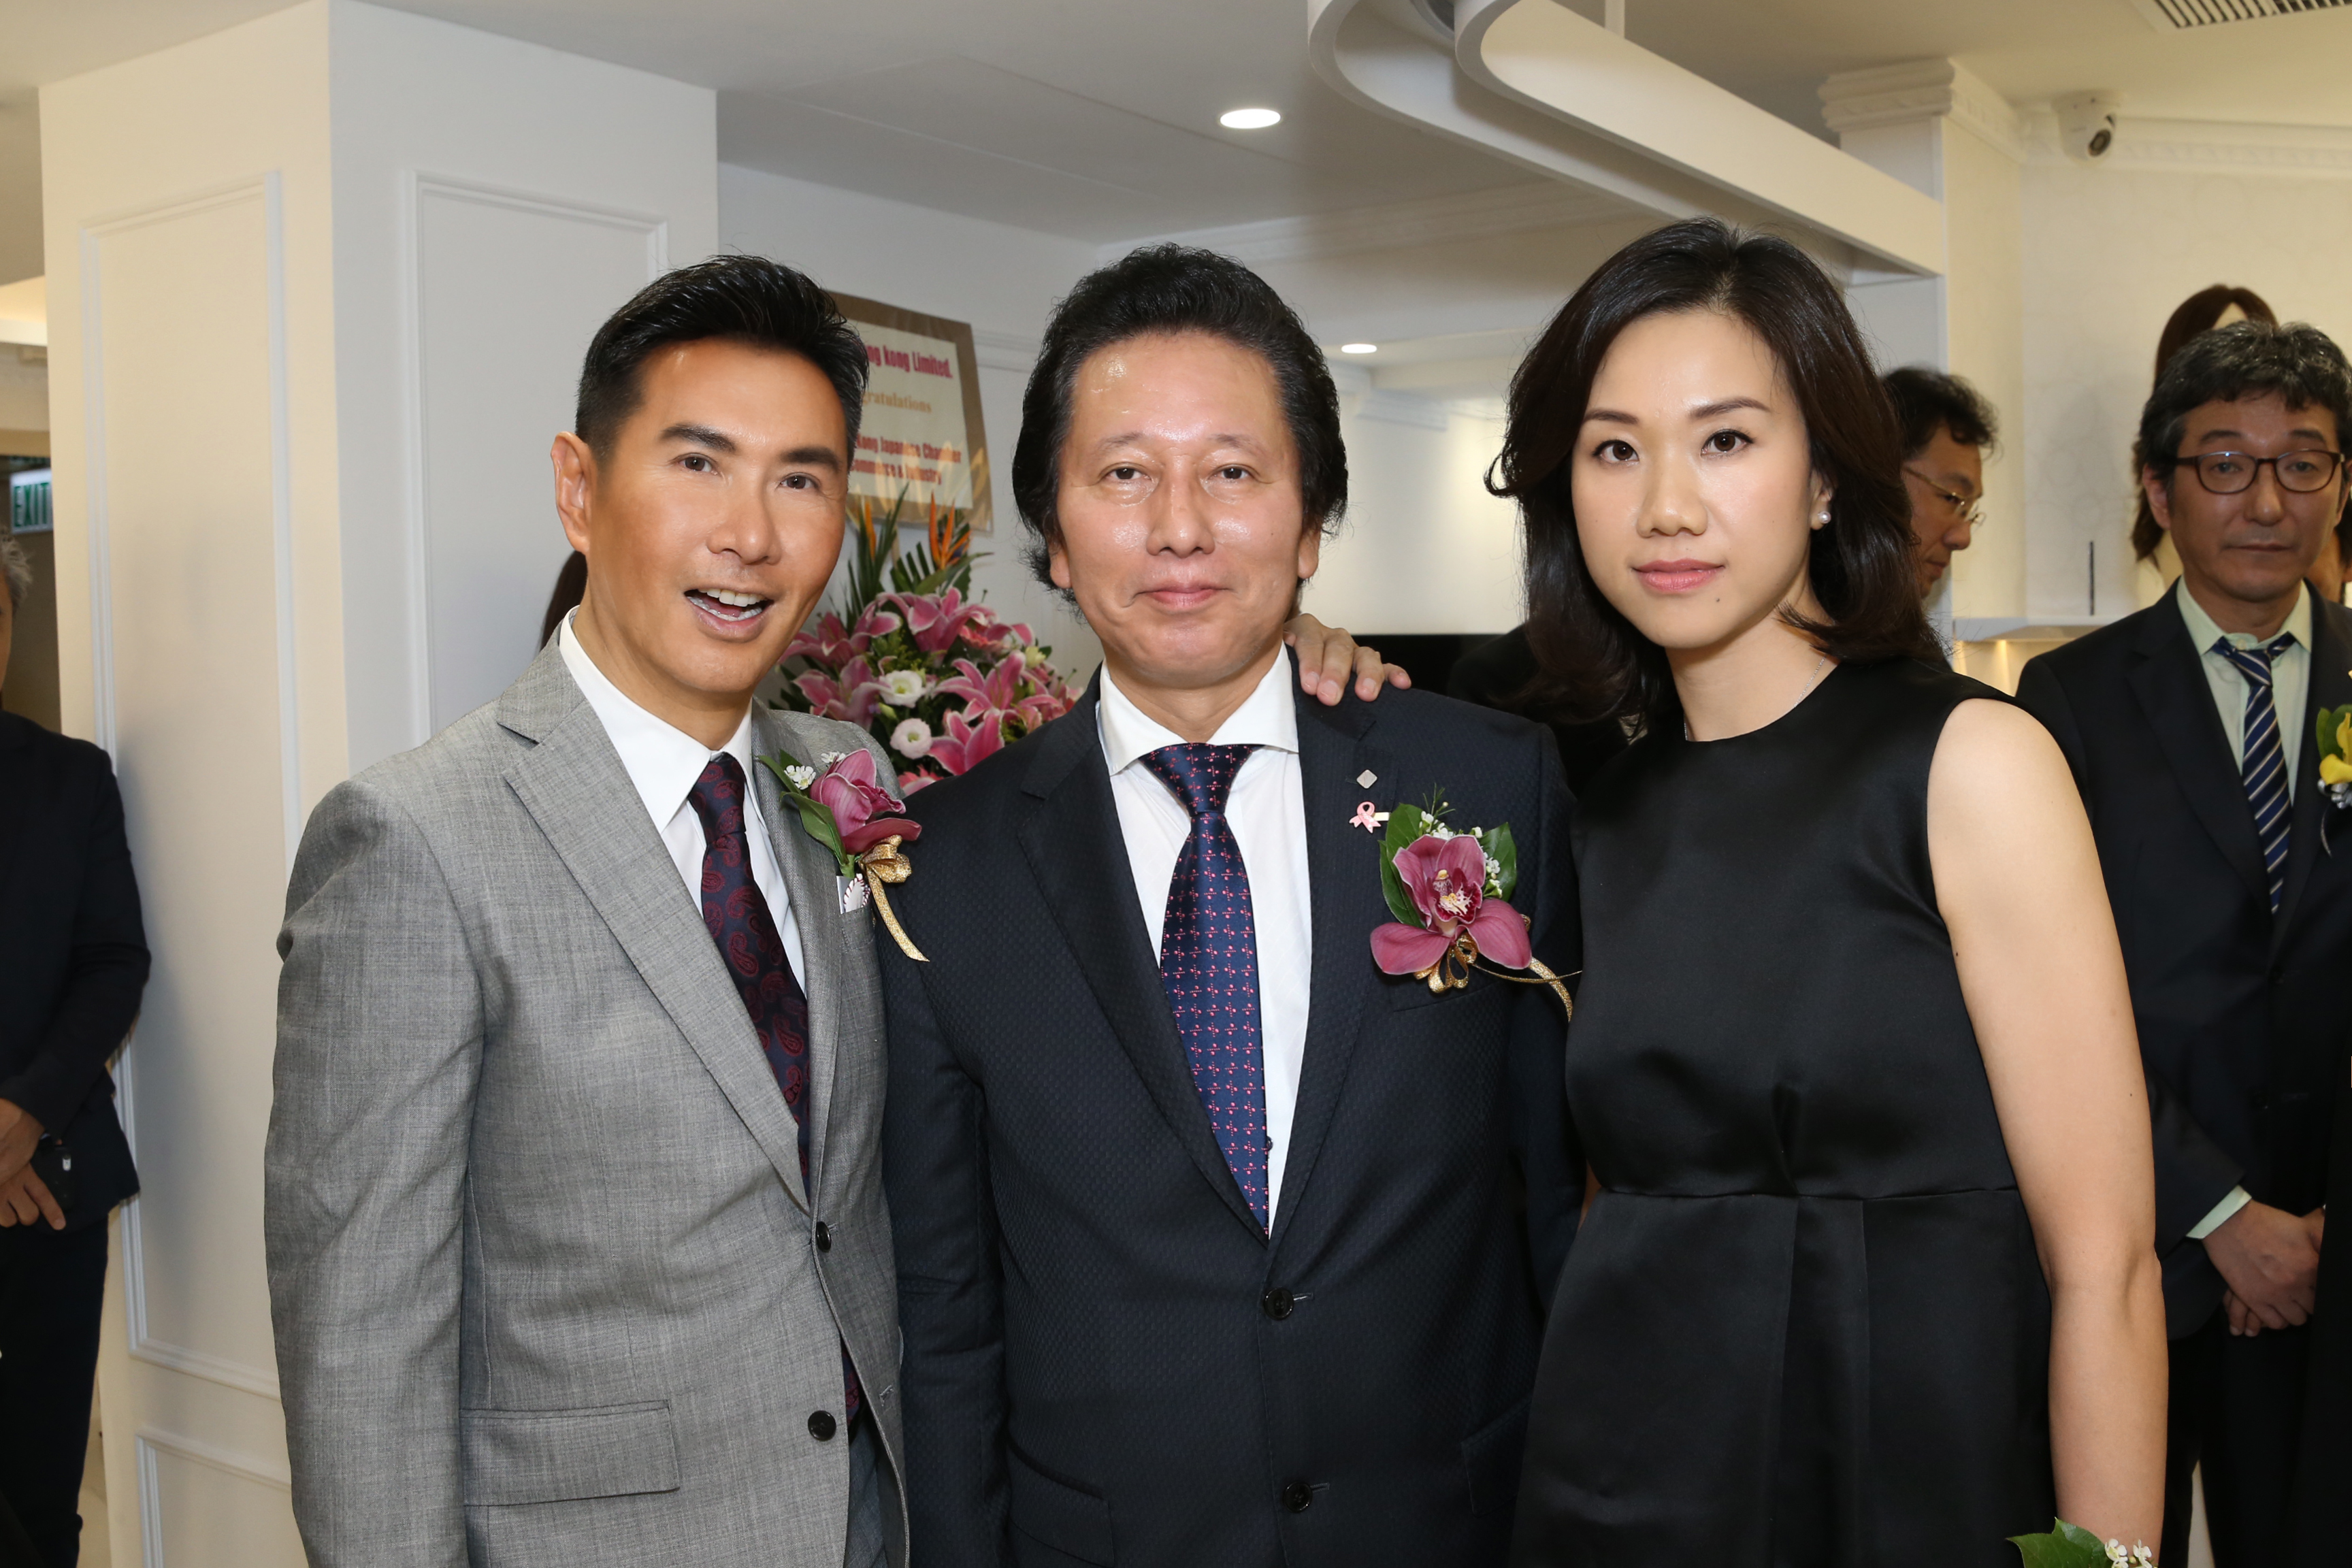 Mr. William Louey Lai-kuen, Mr. Yoshihiro Tsumura, Ms. Polly Chan